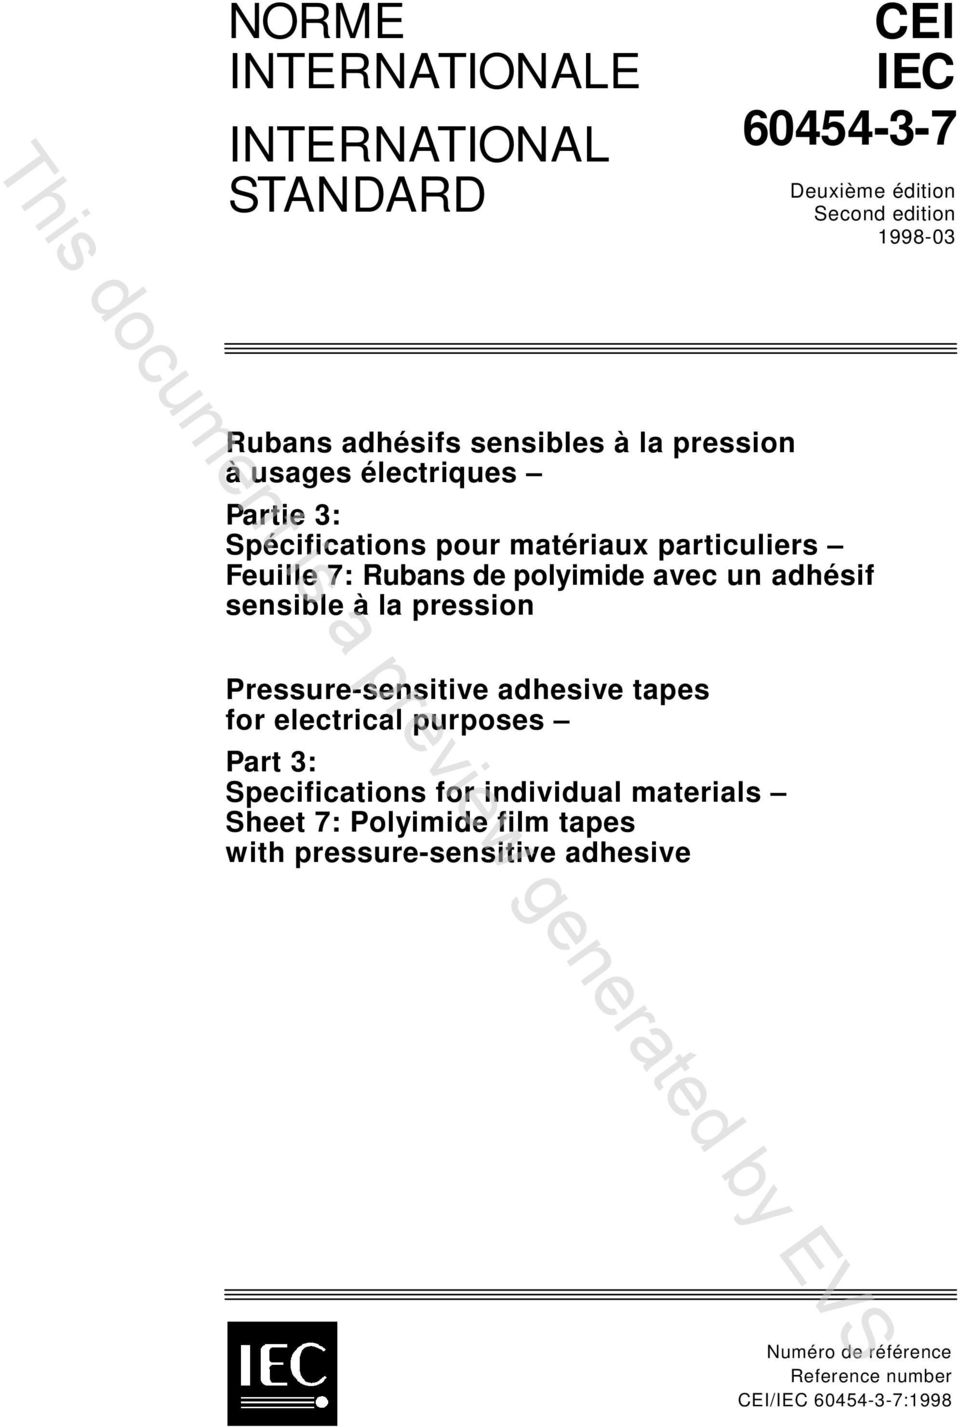 adhésif sensible à la pression Pressure-sensitive adhesive tapes for electrical purposes Part 3: Specifications for individual